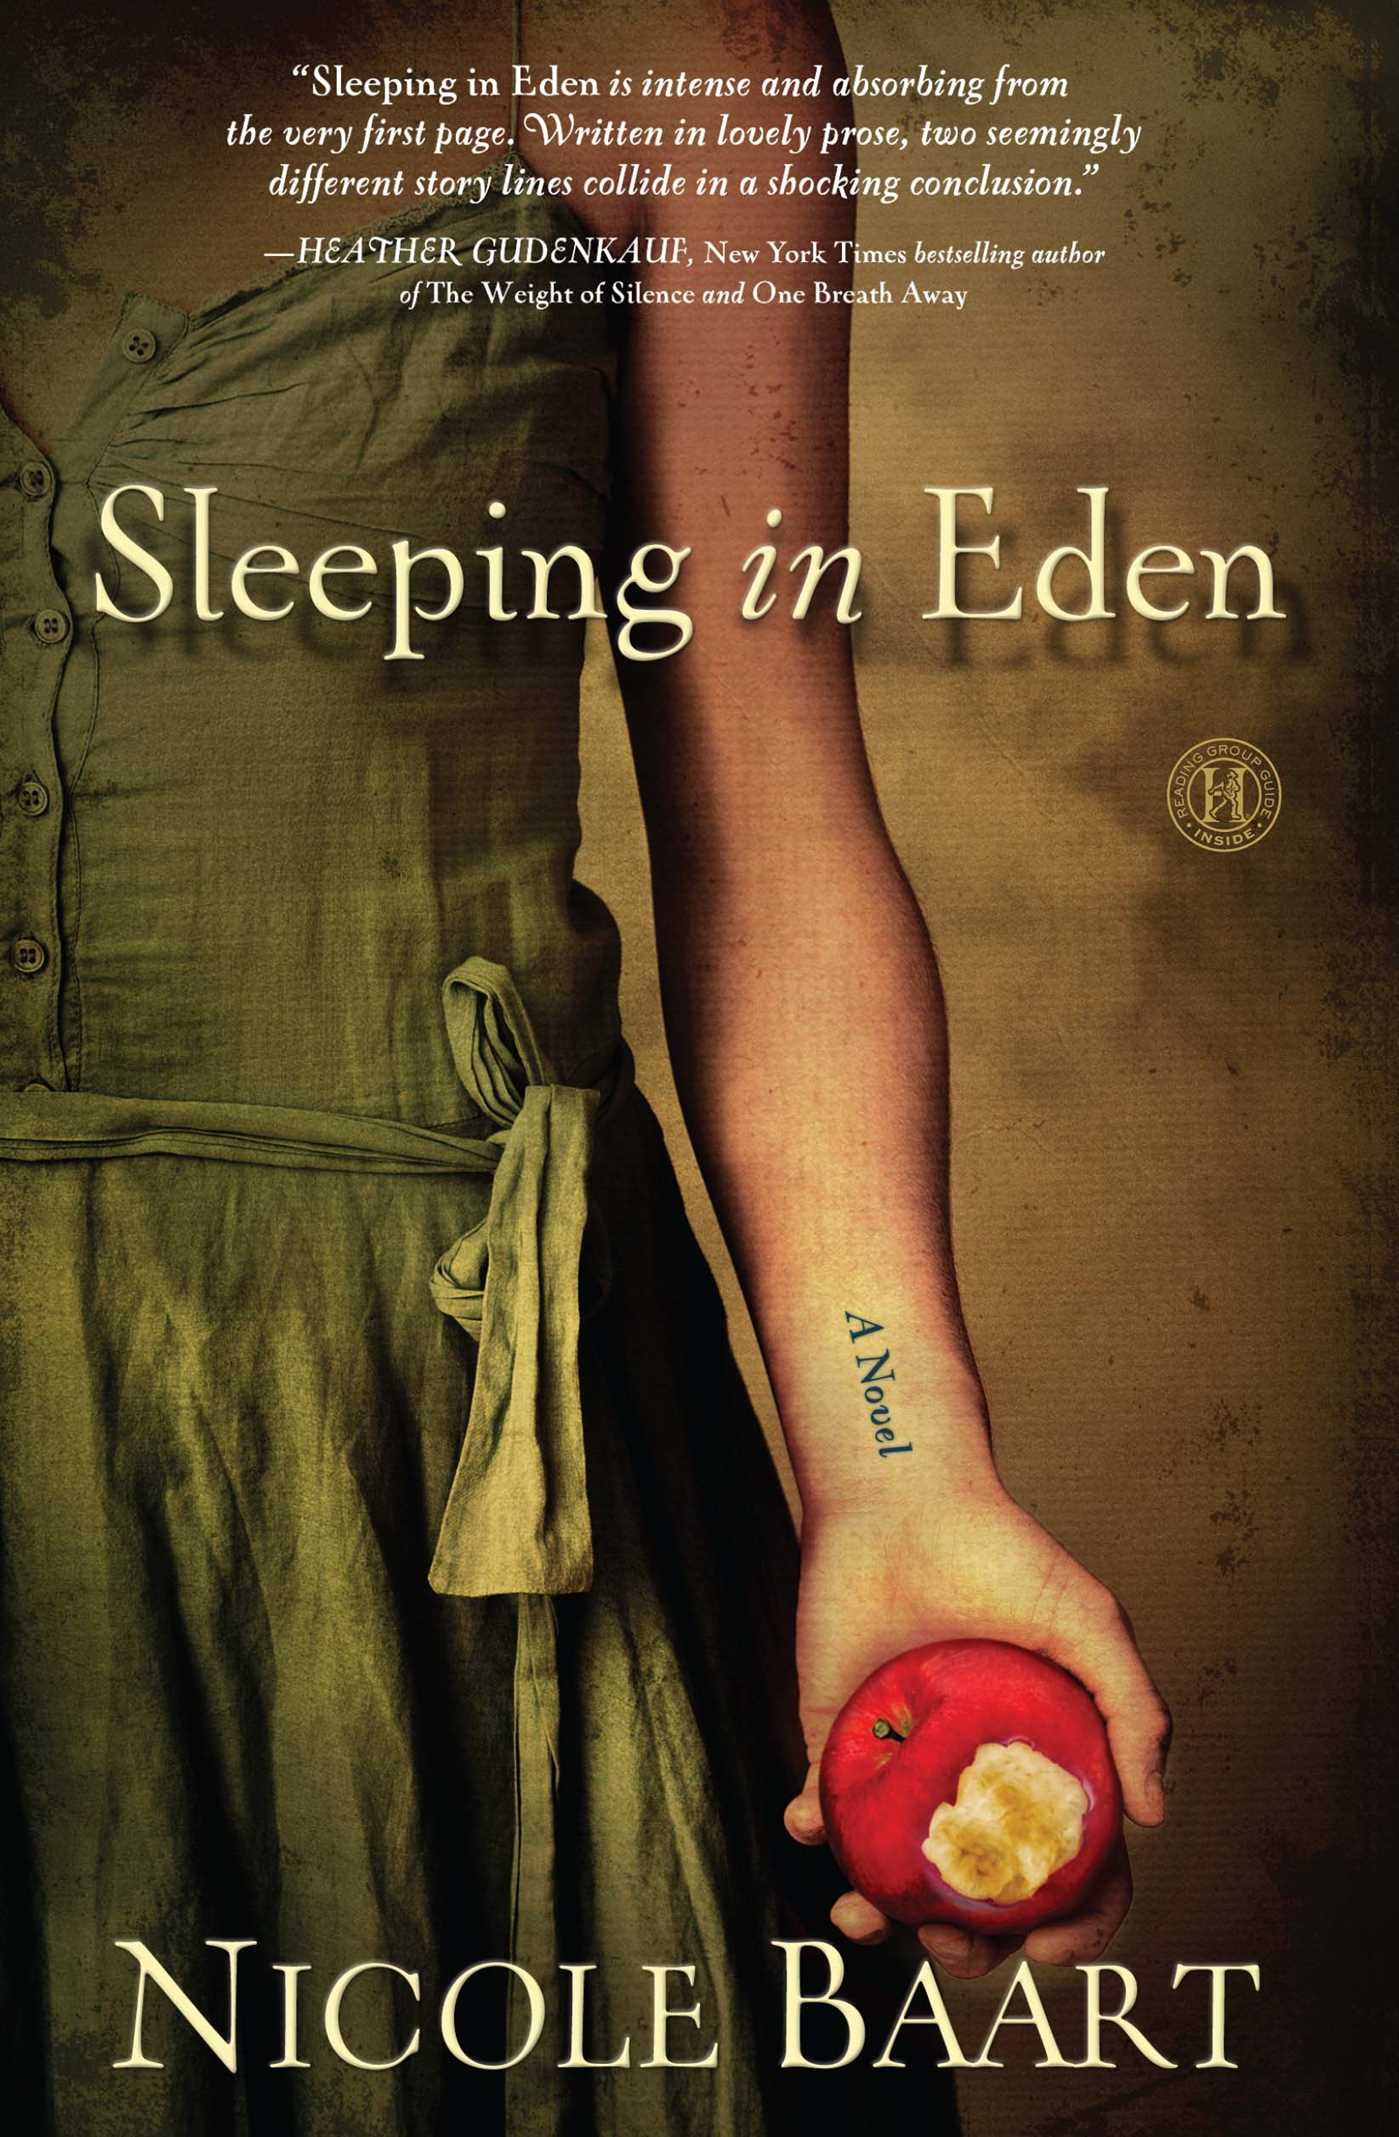 Sleeping in eden 9781439197363 hr